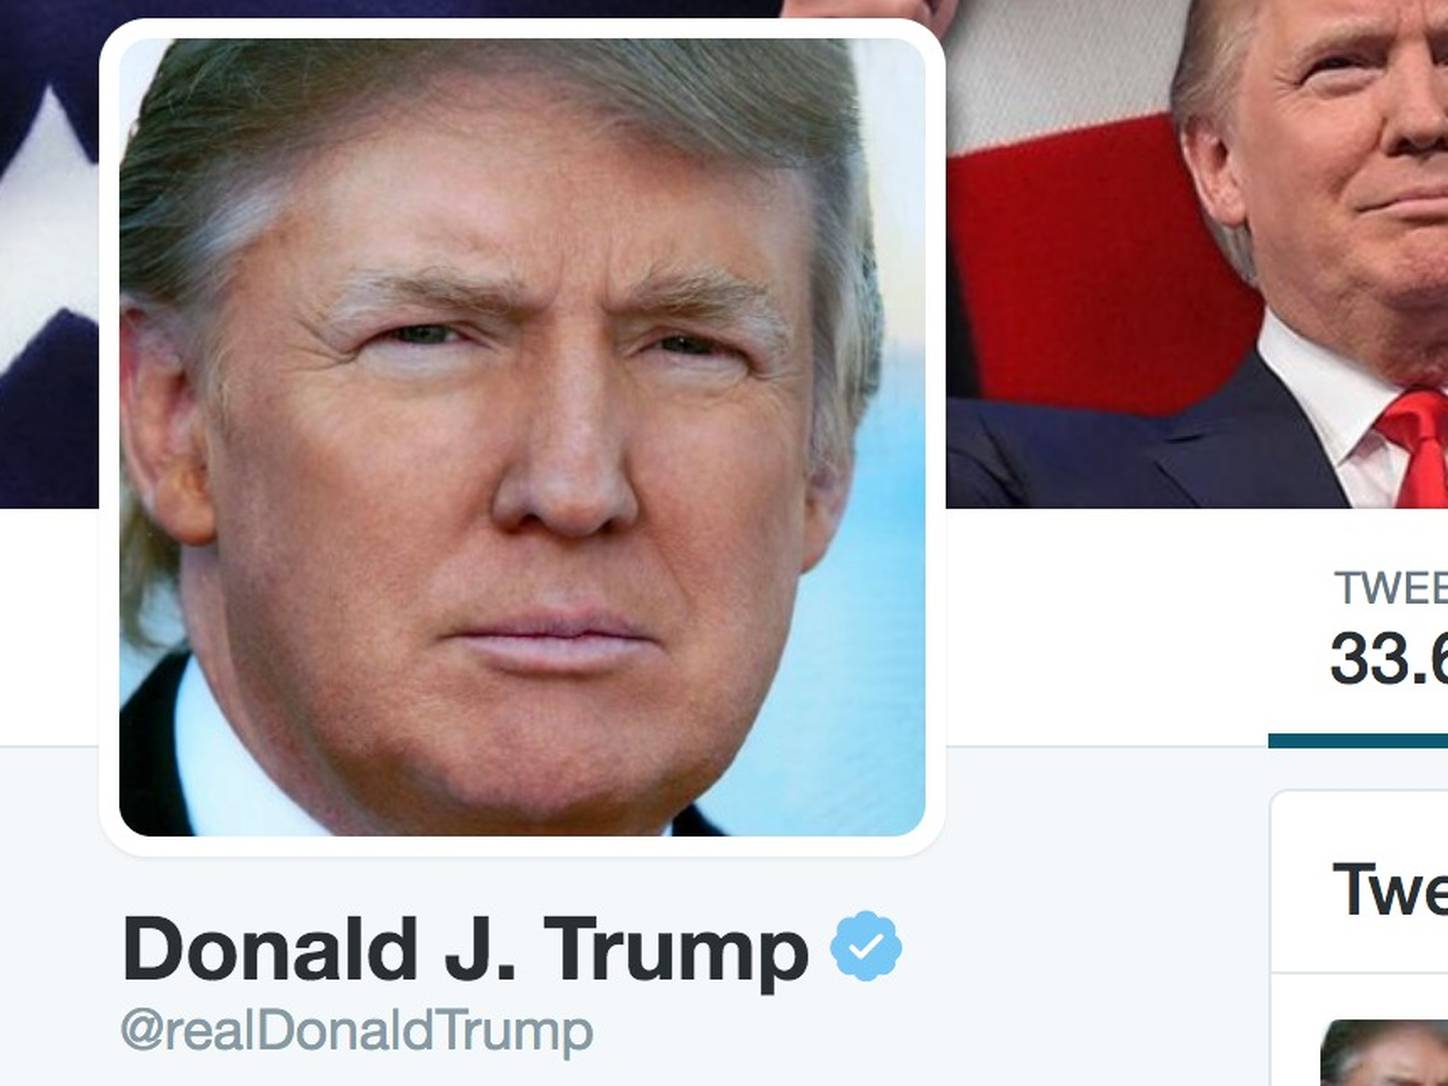 BREAKING NEWS!! Twitter locks the President of the United States and Lin Wood out of their Twitter account for 12 hours.